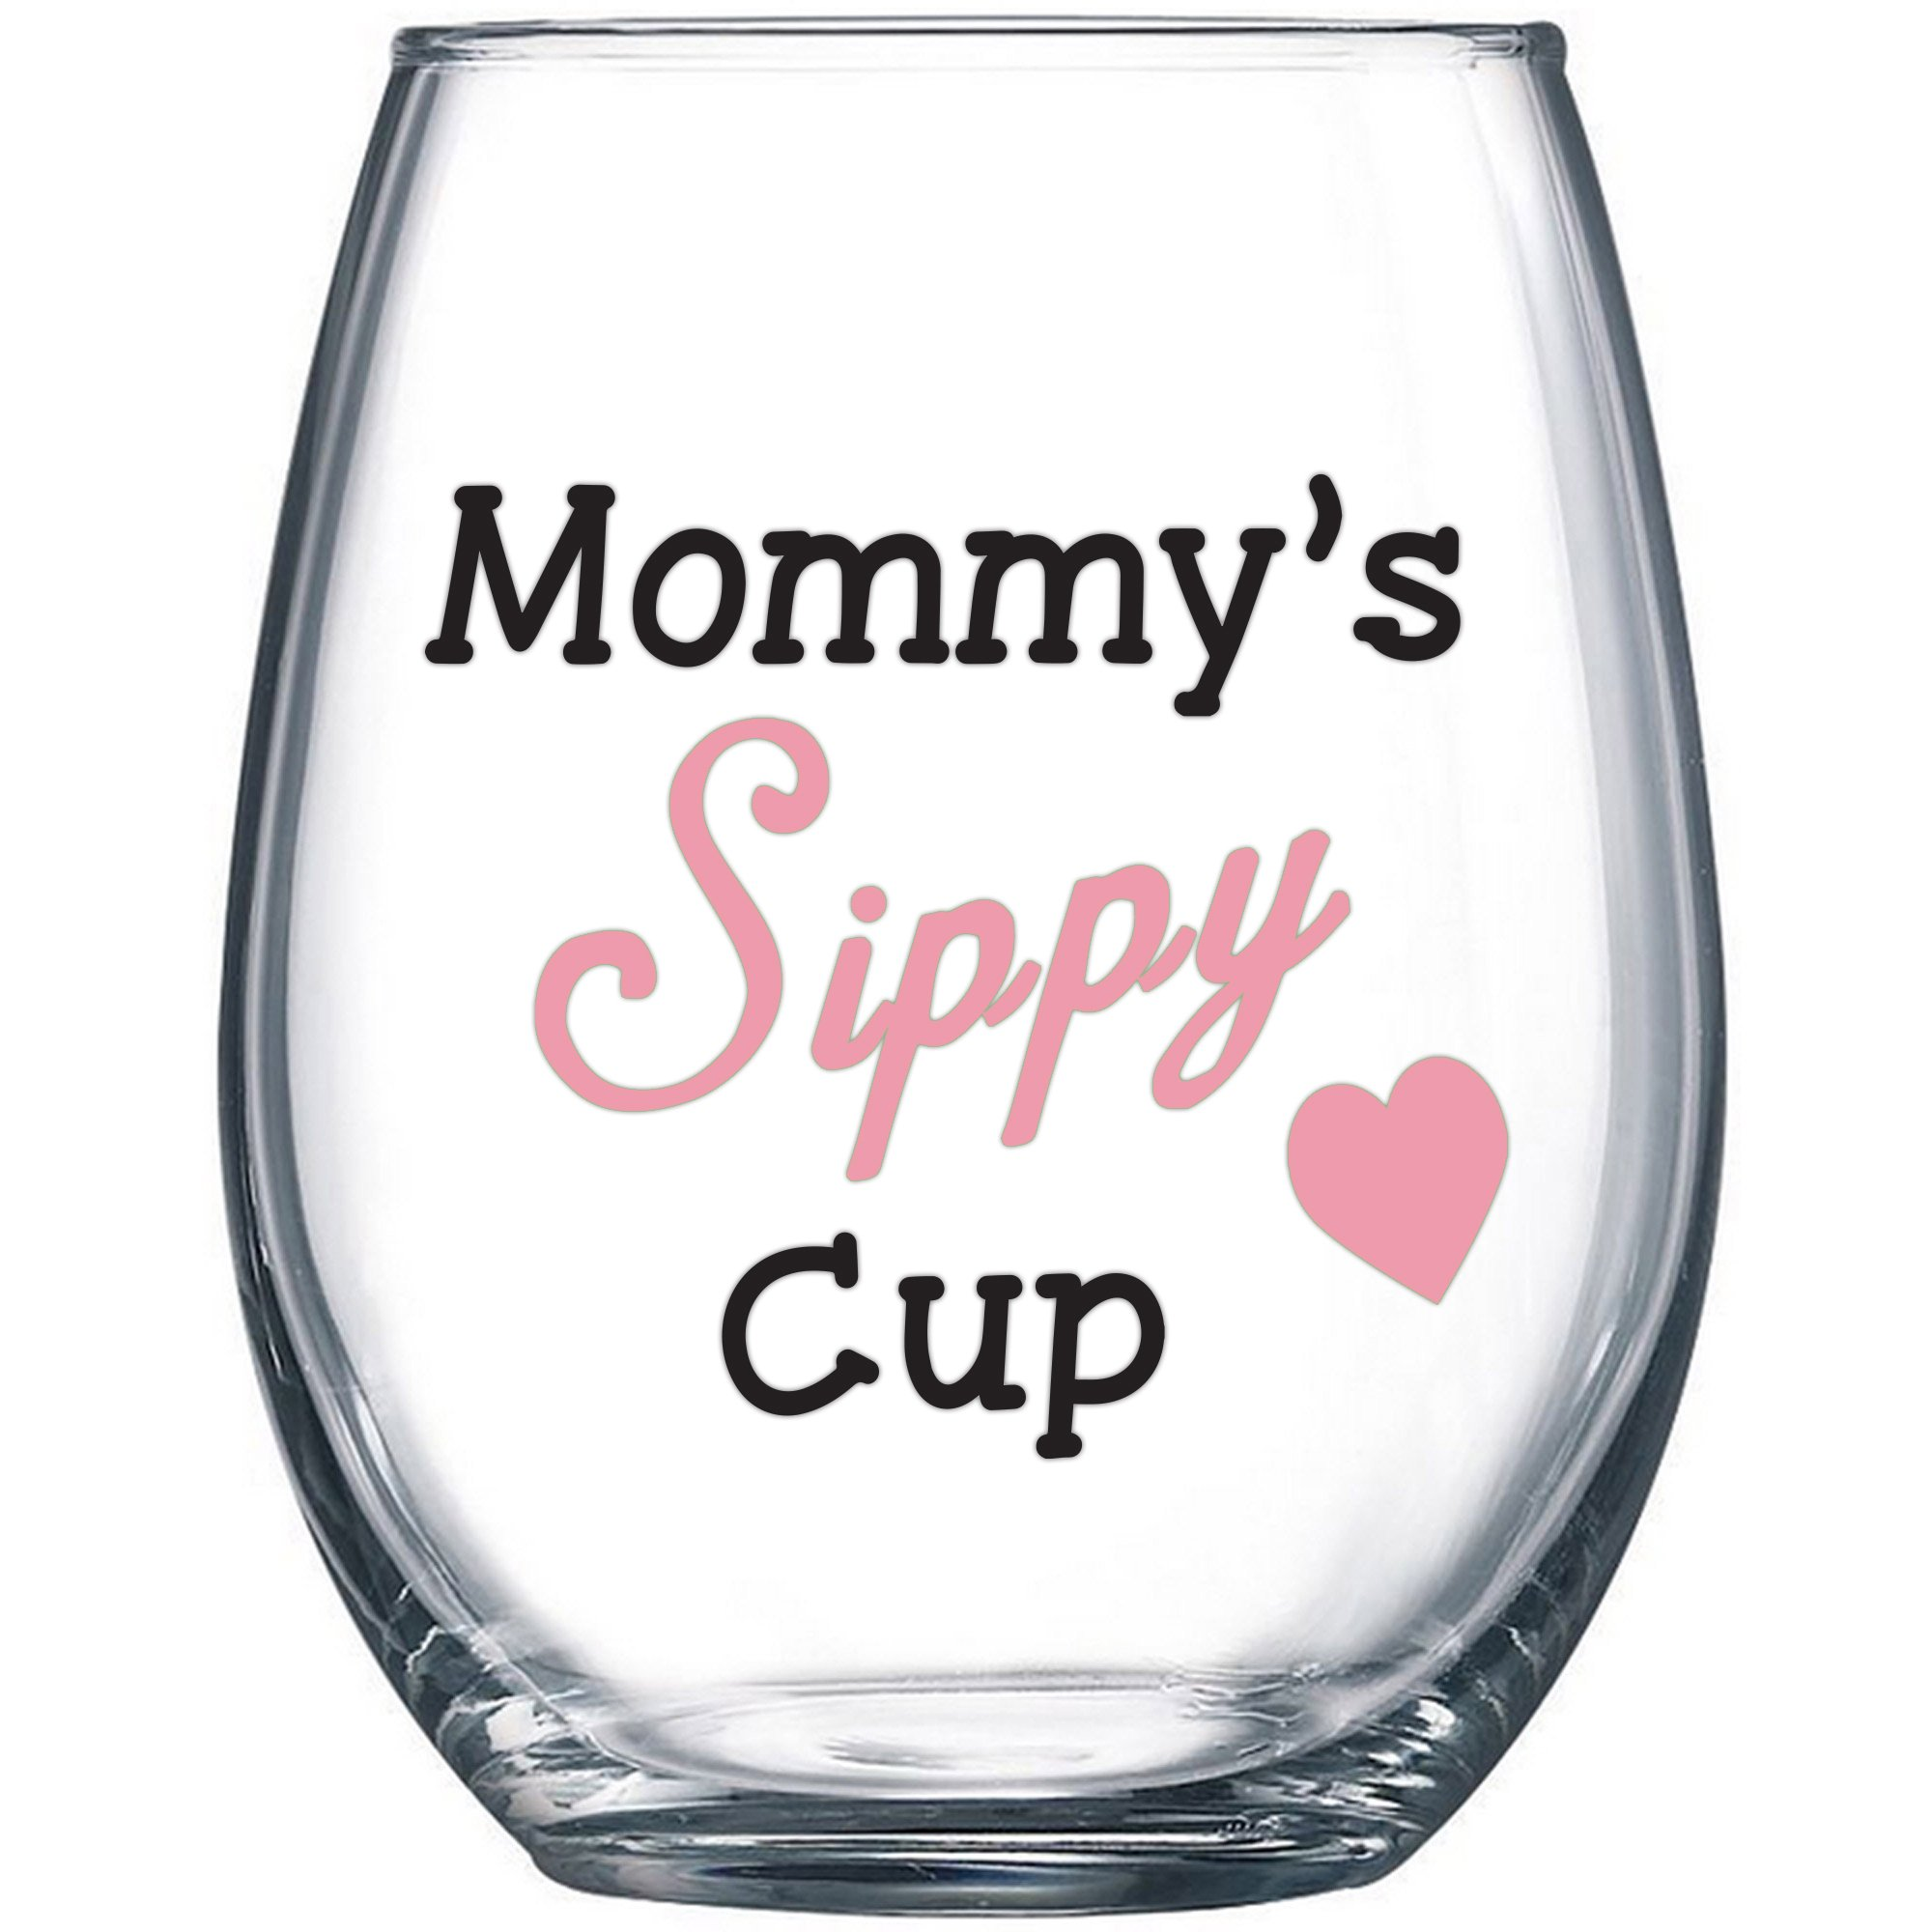 Mommys Sippy Cup Funny Wine Glass 15oz Christmas Gift For Mom